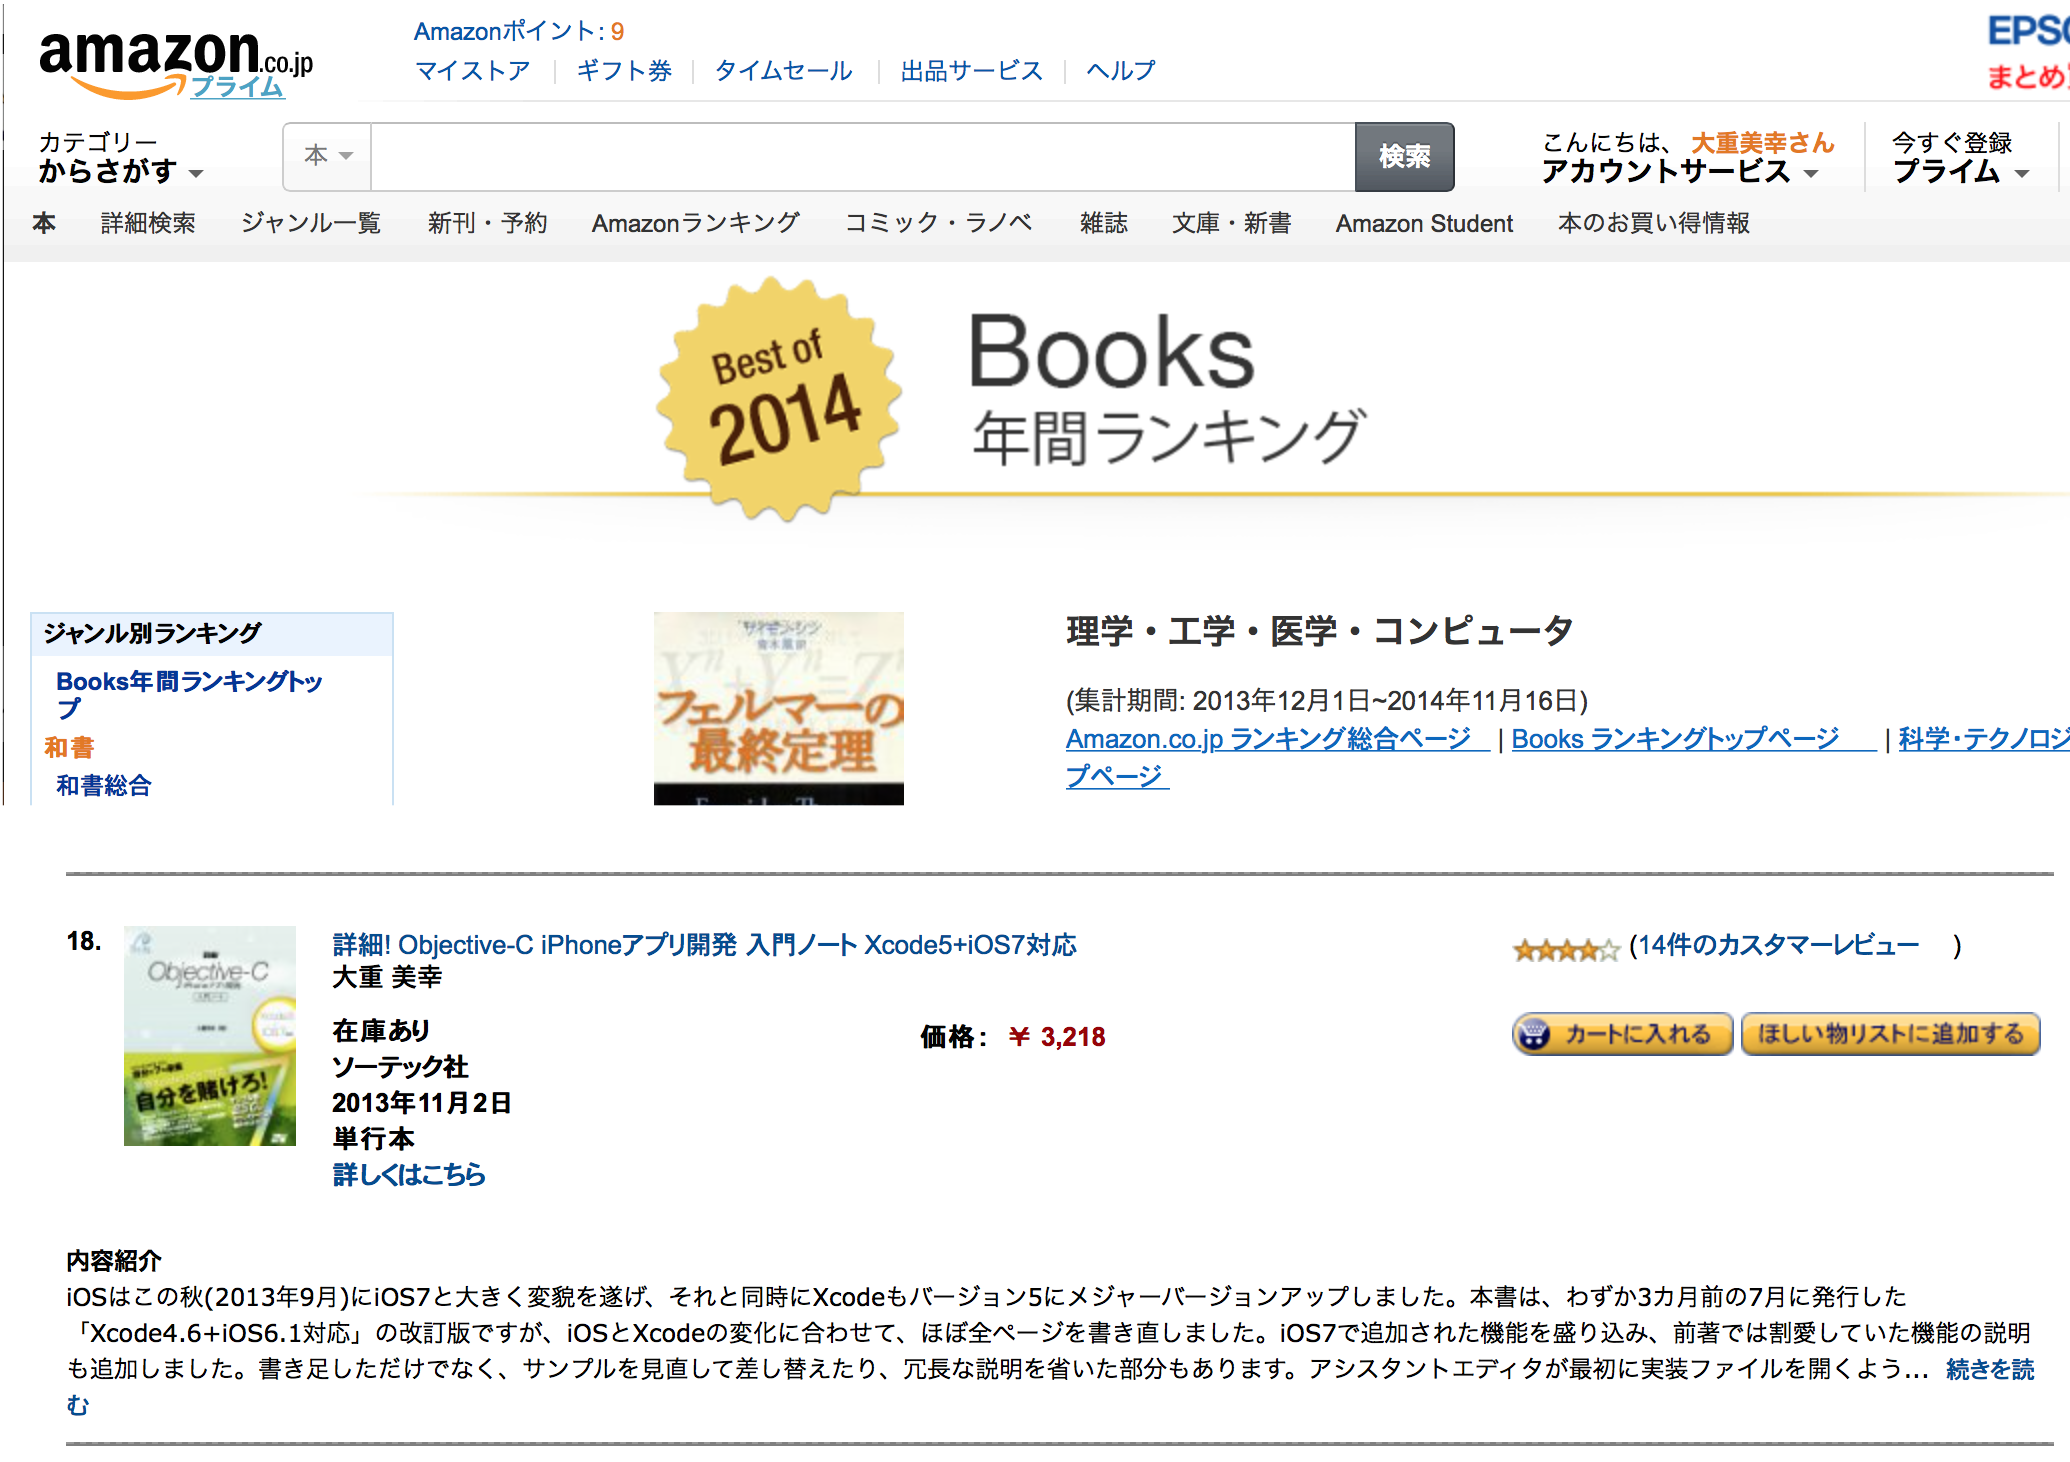 http://oshige.com/blog/index/images/amazon2014ranking.png